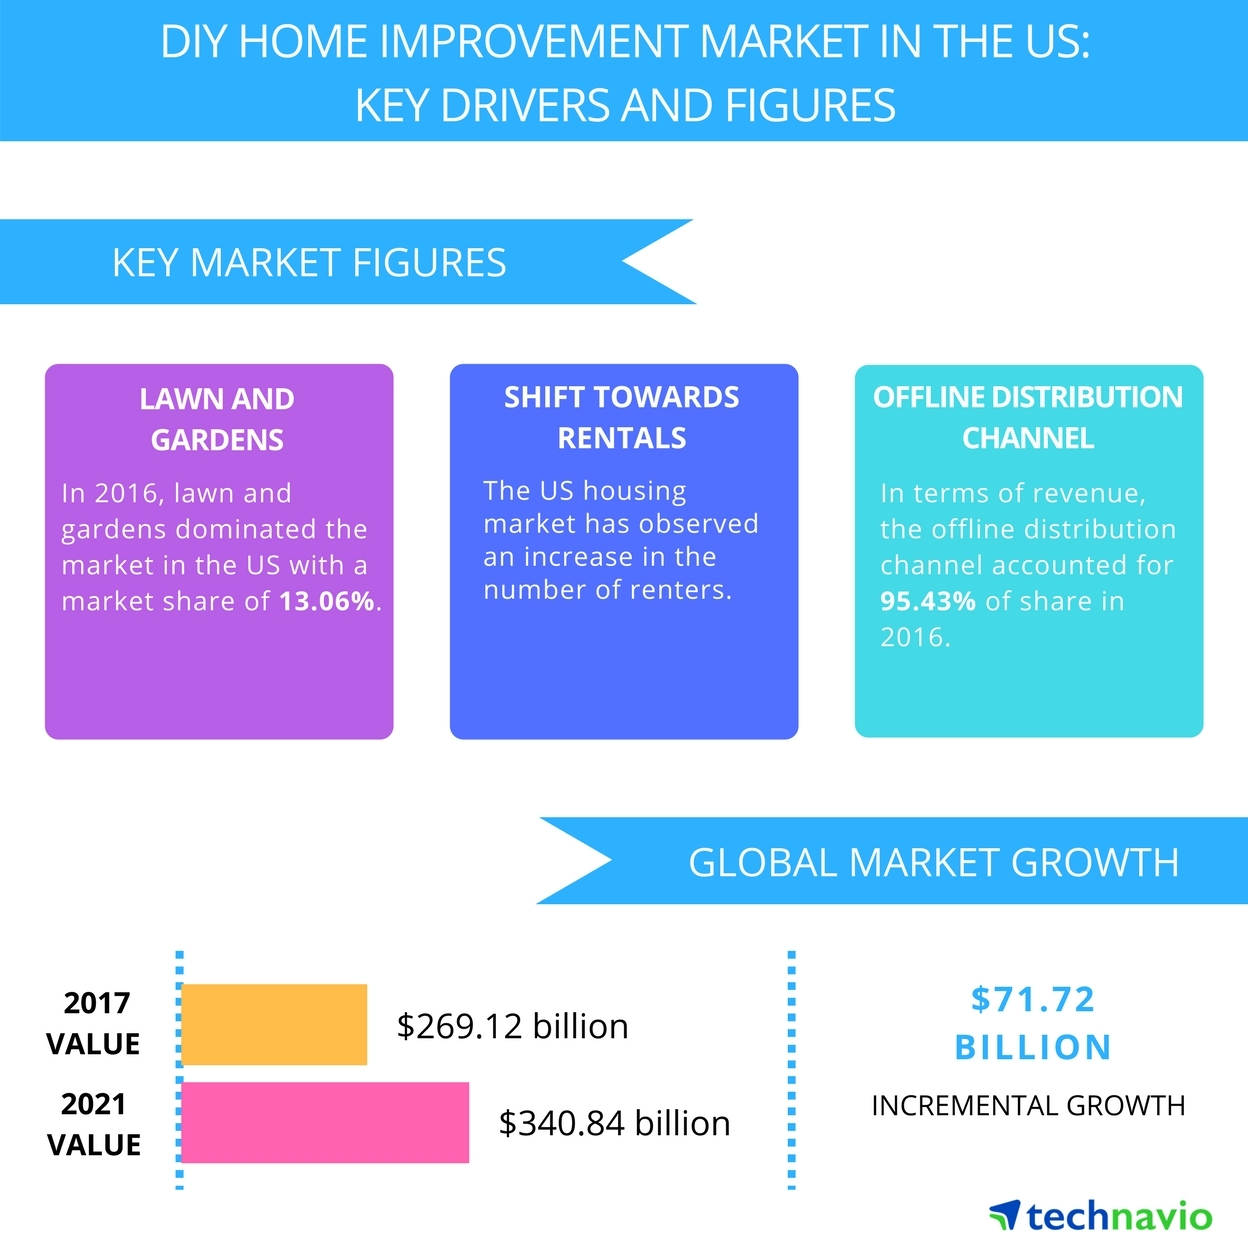 Top 6 Vendors In The Diy Home Improvement Market In The Us From 2017